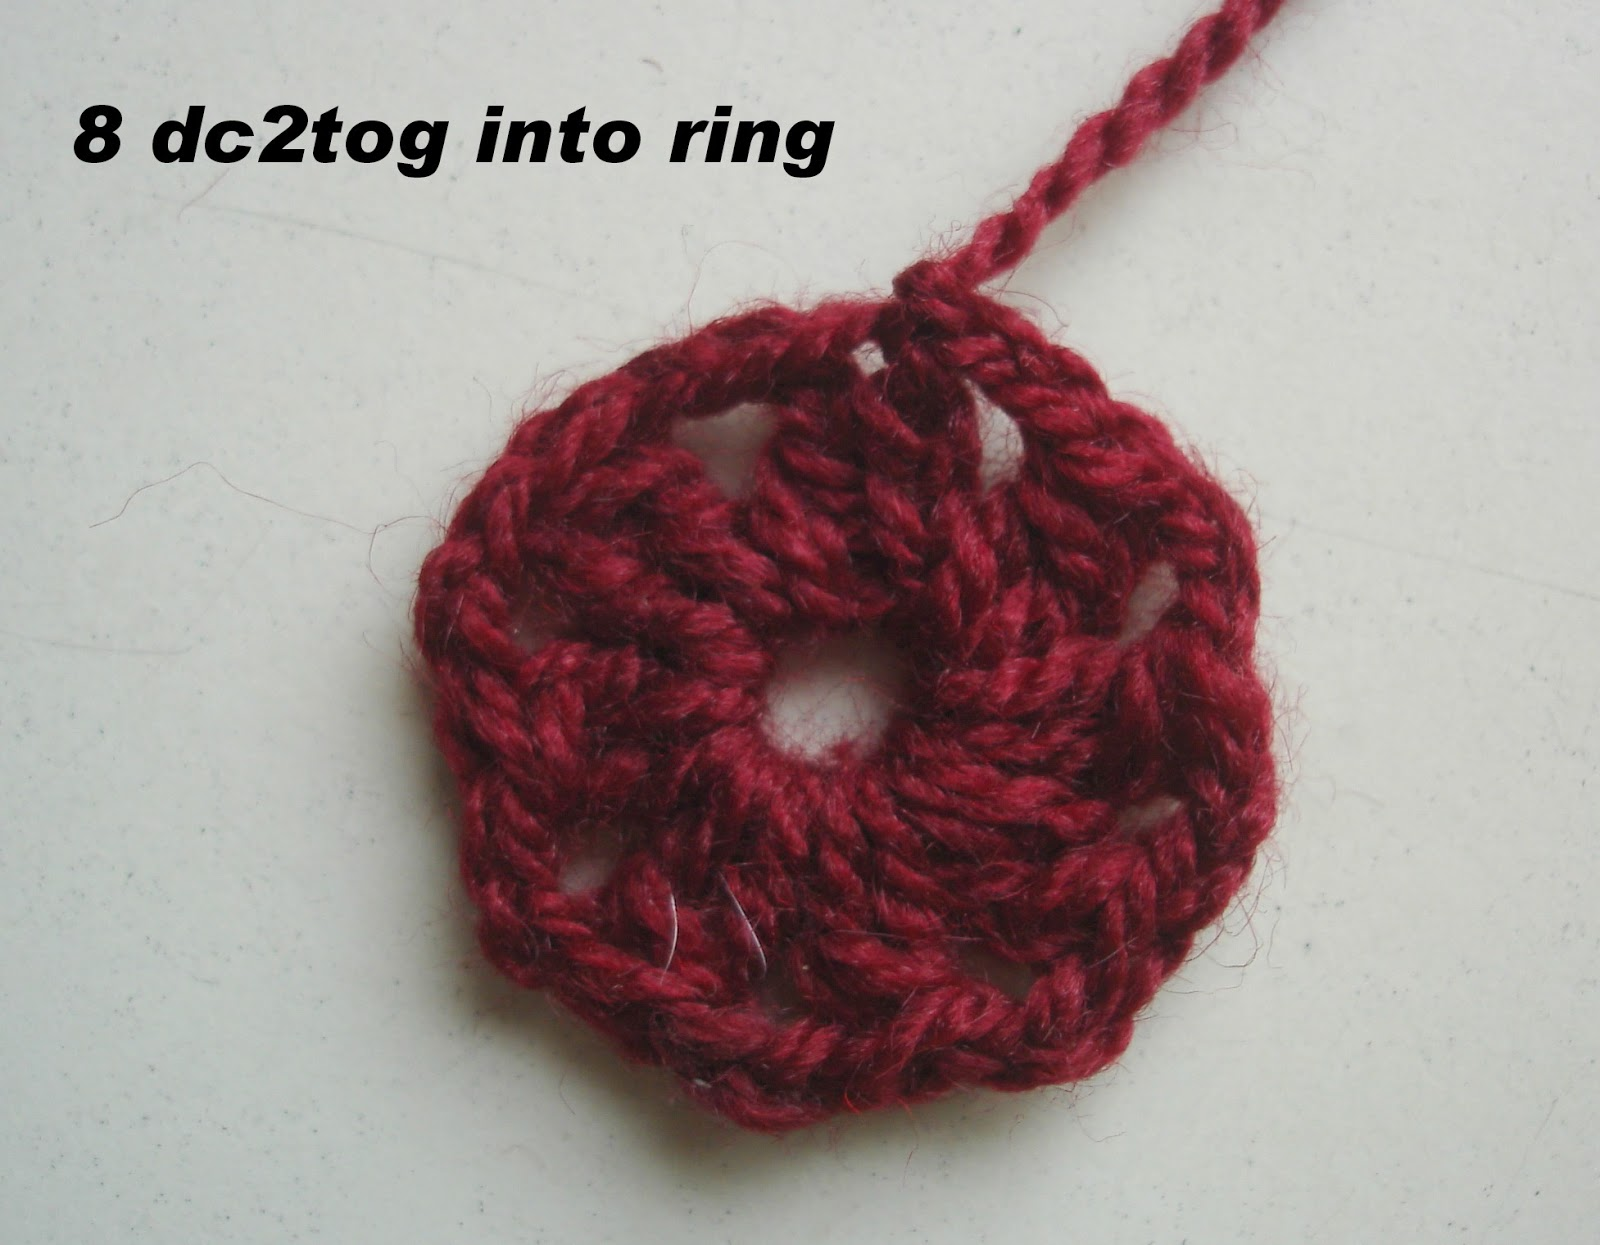 Crochet Stitches Dc3tog : Round 2: Join yellow into a 2ch-sp, (ch 2, dc3tog, ch 2, dc4tog) into ...